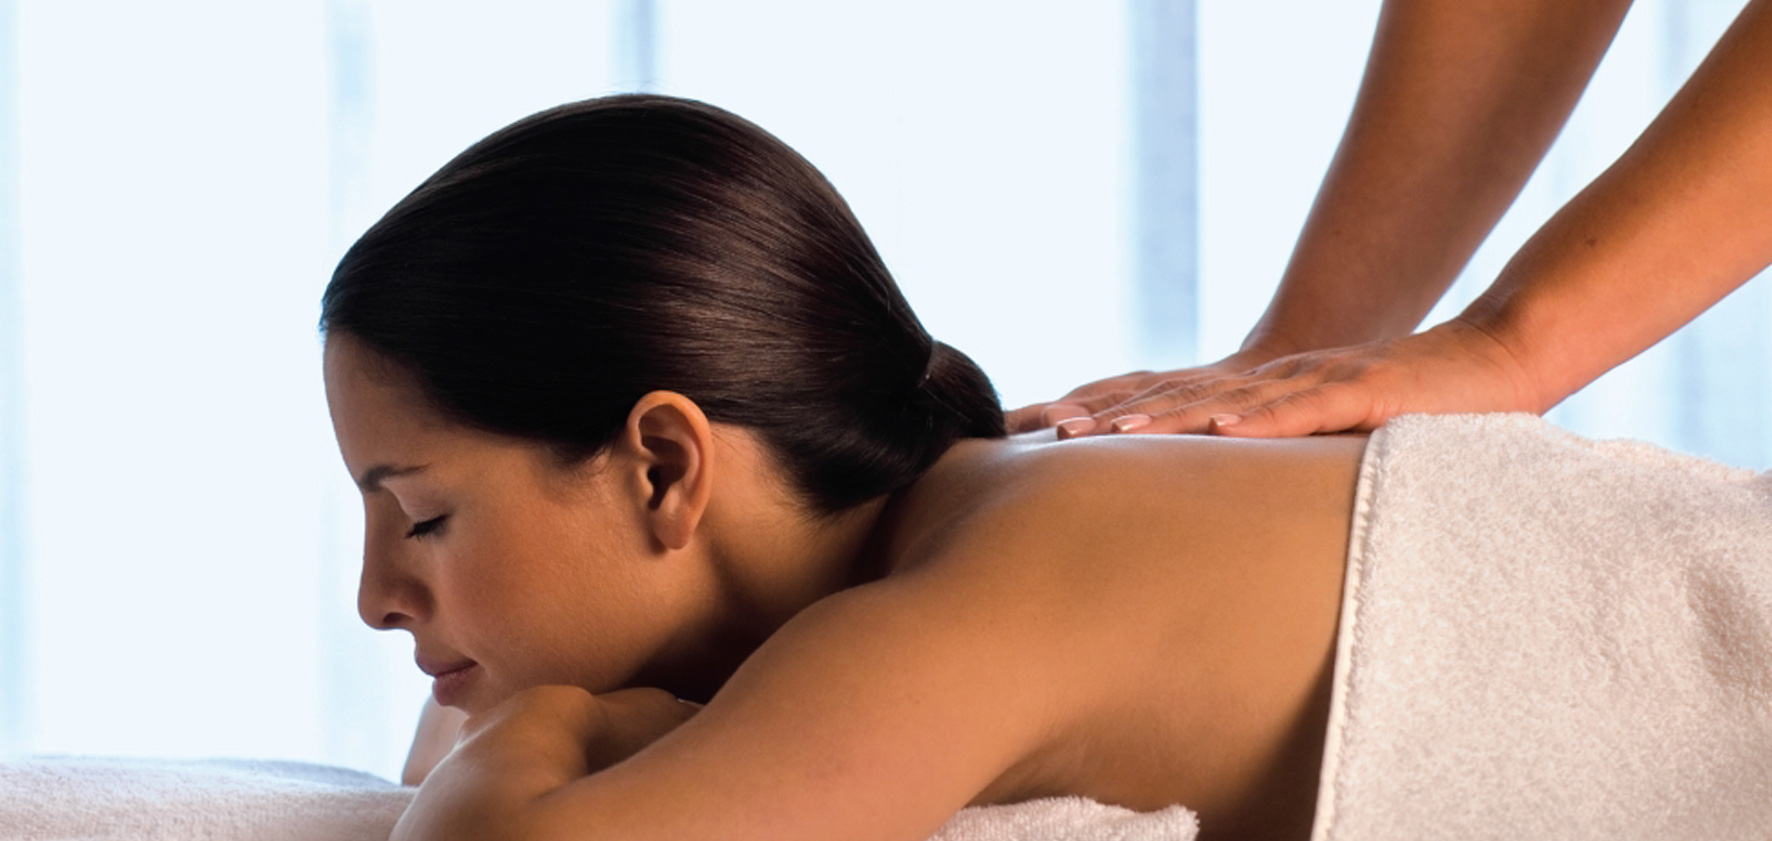 Deep Tissue Massage releases tension